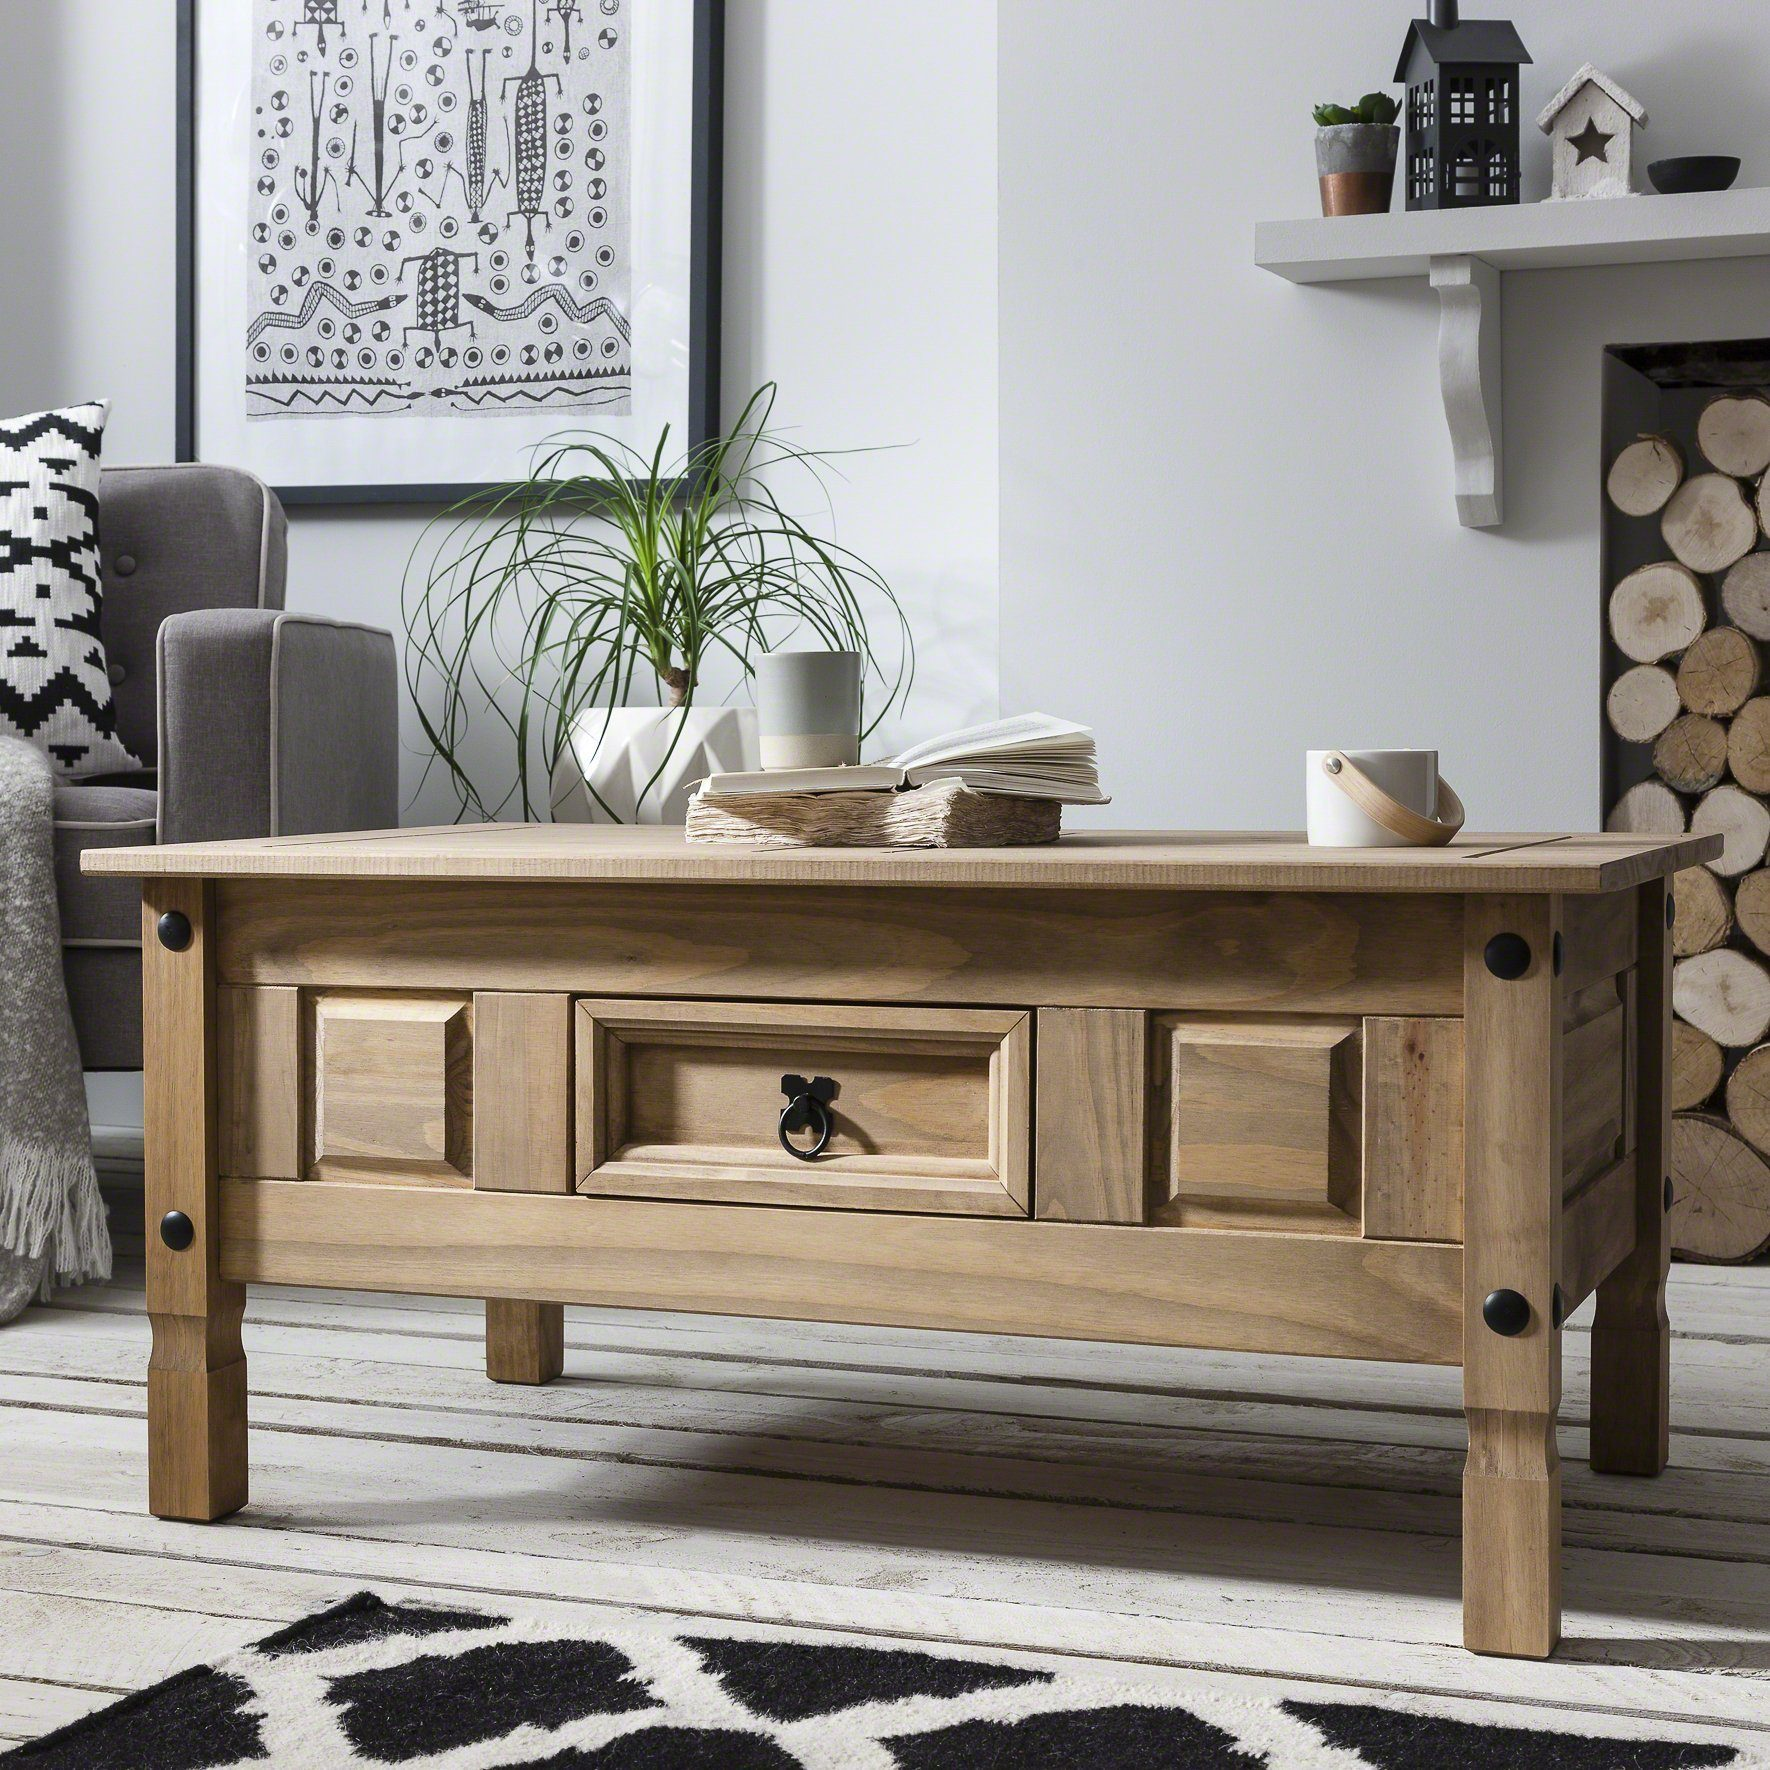 Couchtisch Klassisch Holz Classic Wood Corona Coffee Table With Storage